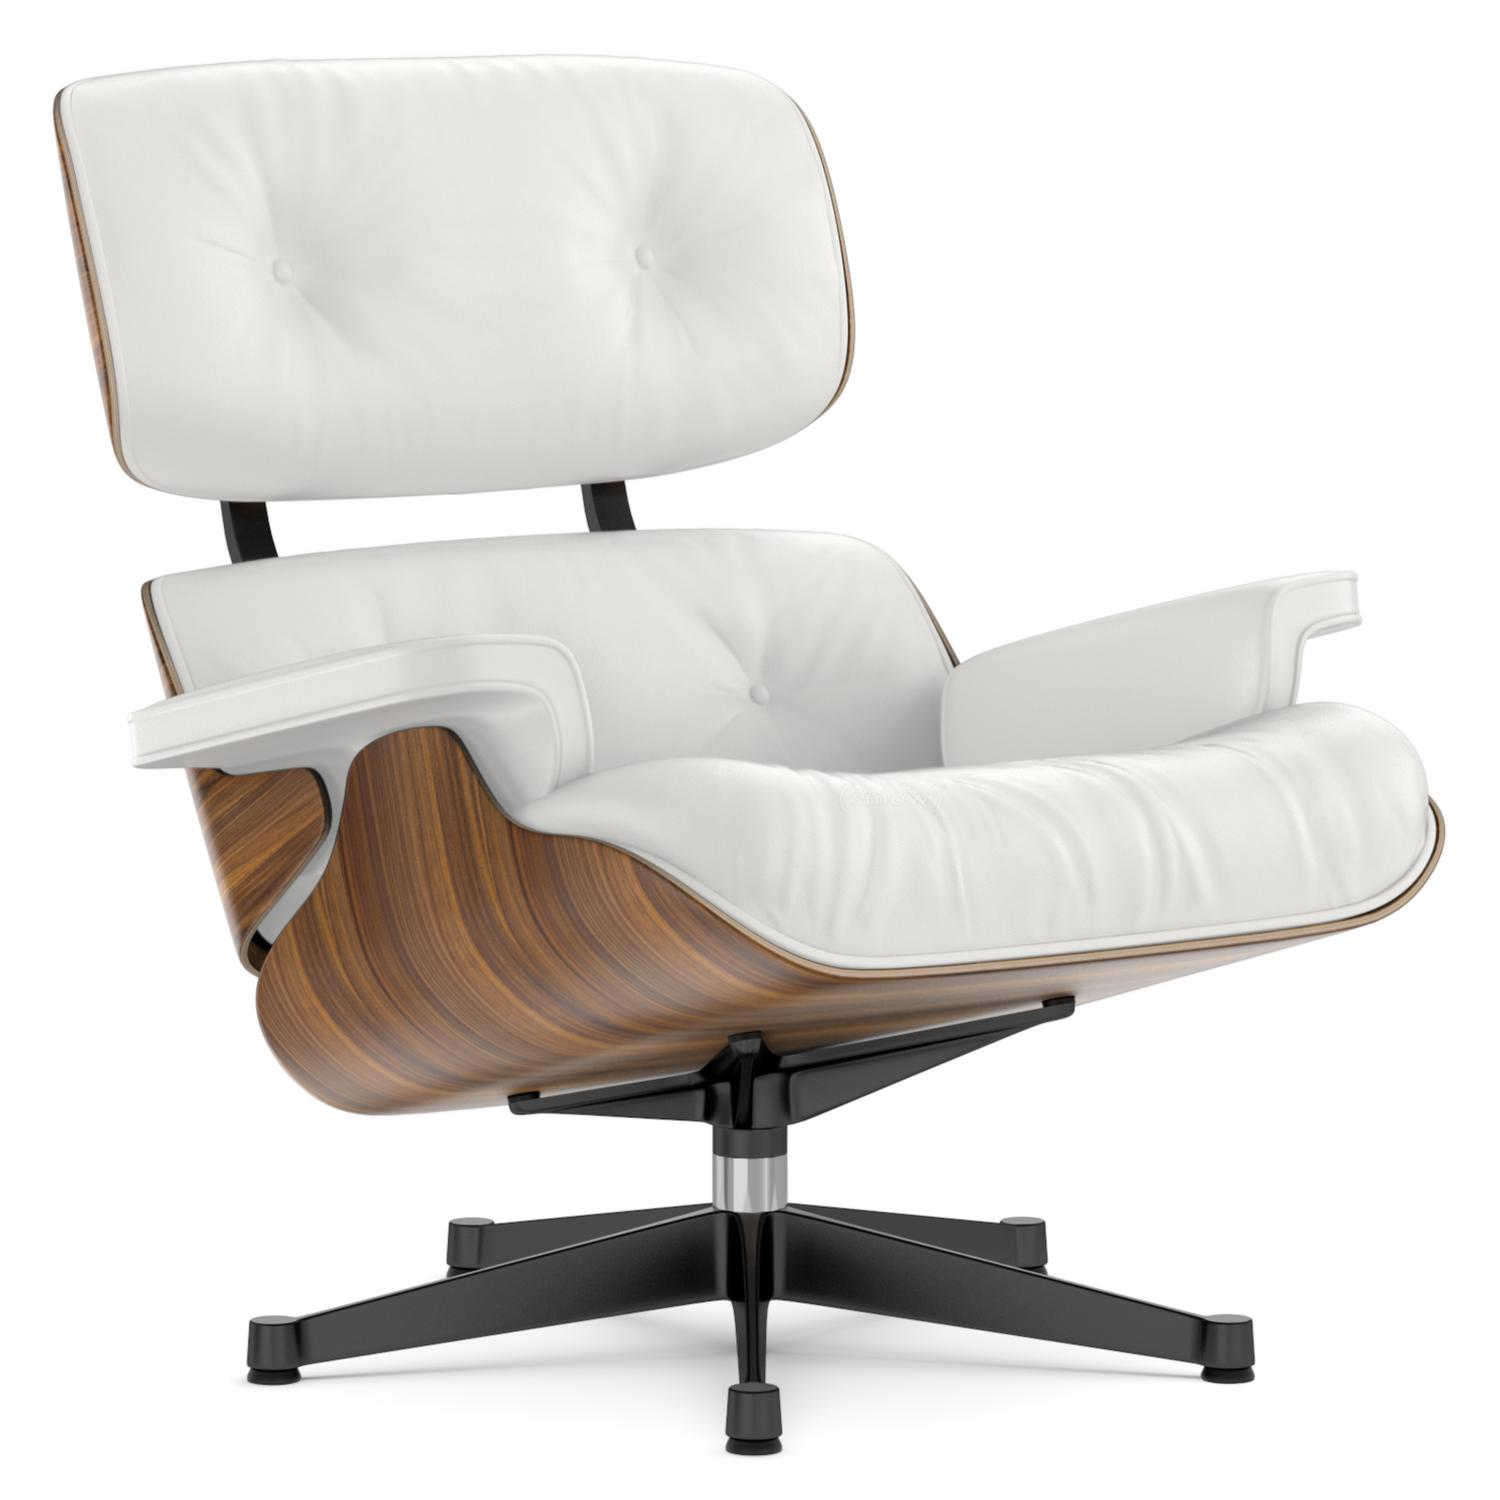 Eames Vitra Vitra Lounge Chair By Charles Ray Eames 1956 Designer